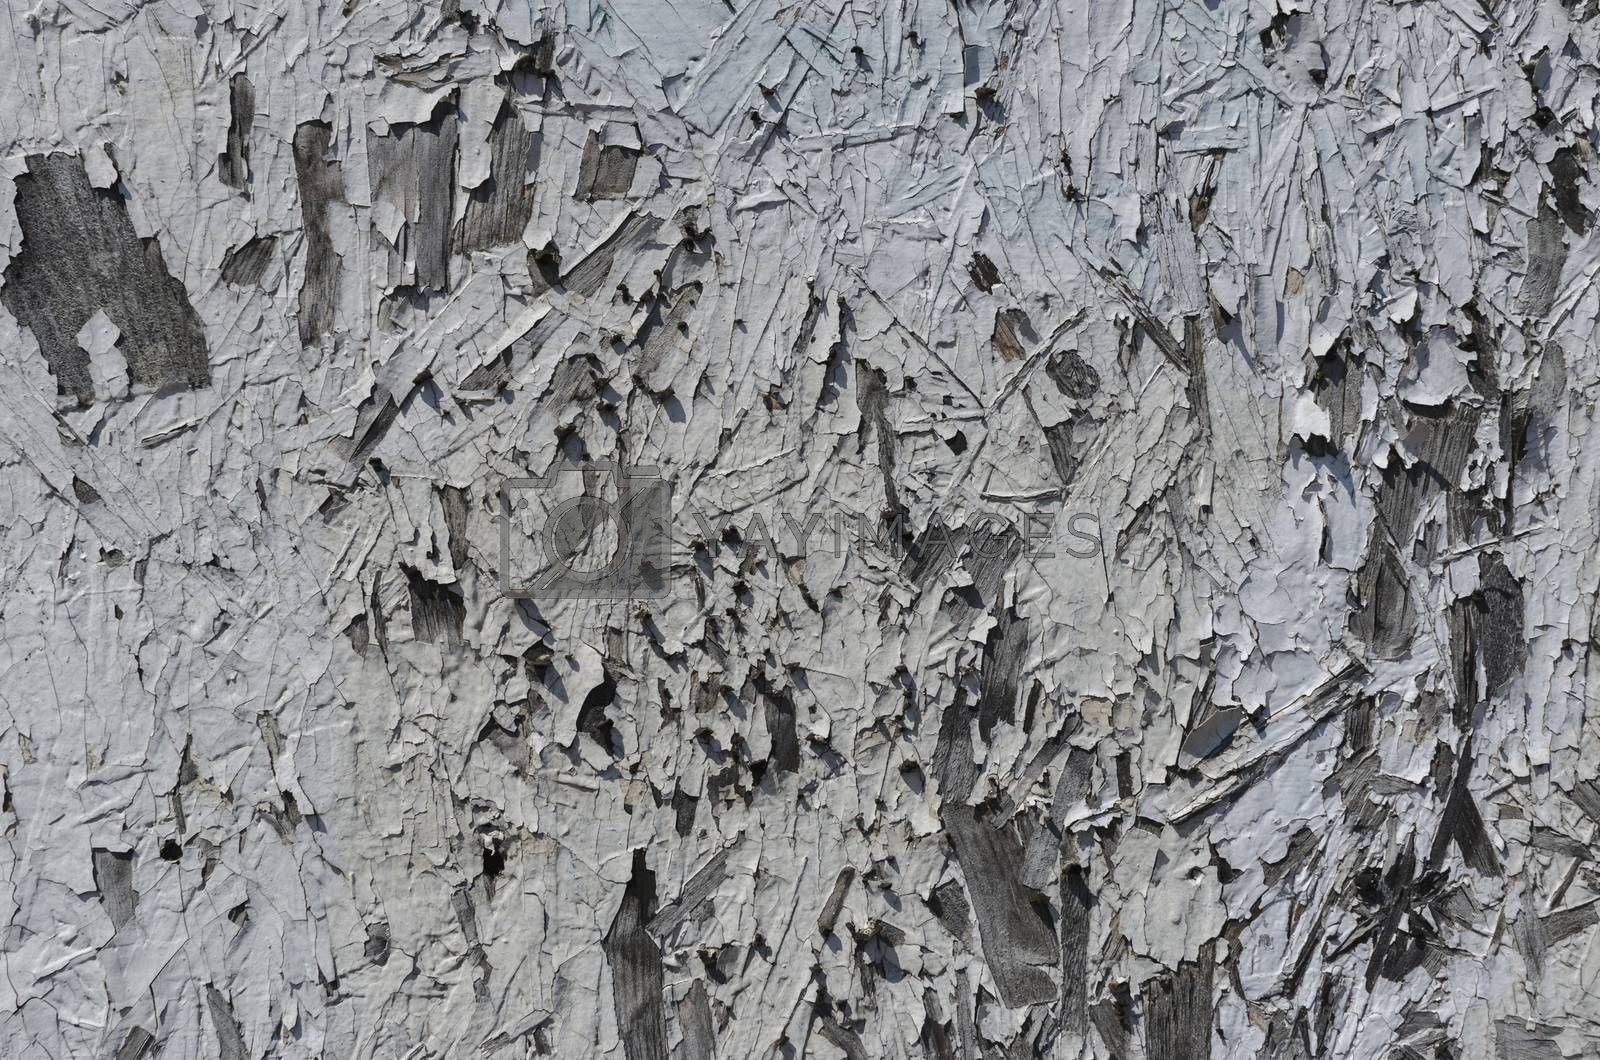 Textured painted wood with cracked and peeling paint